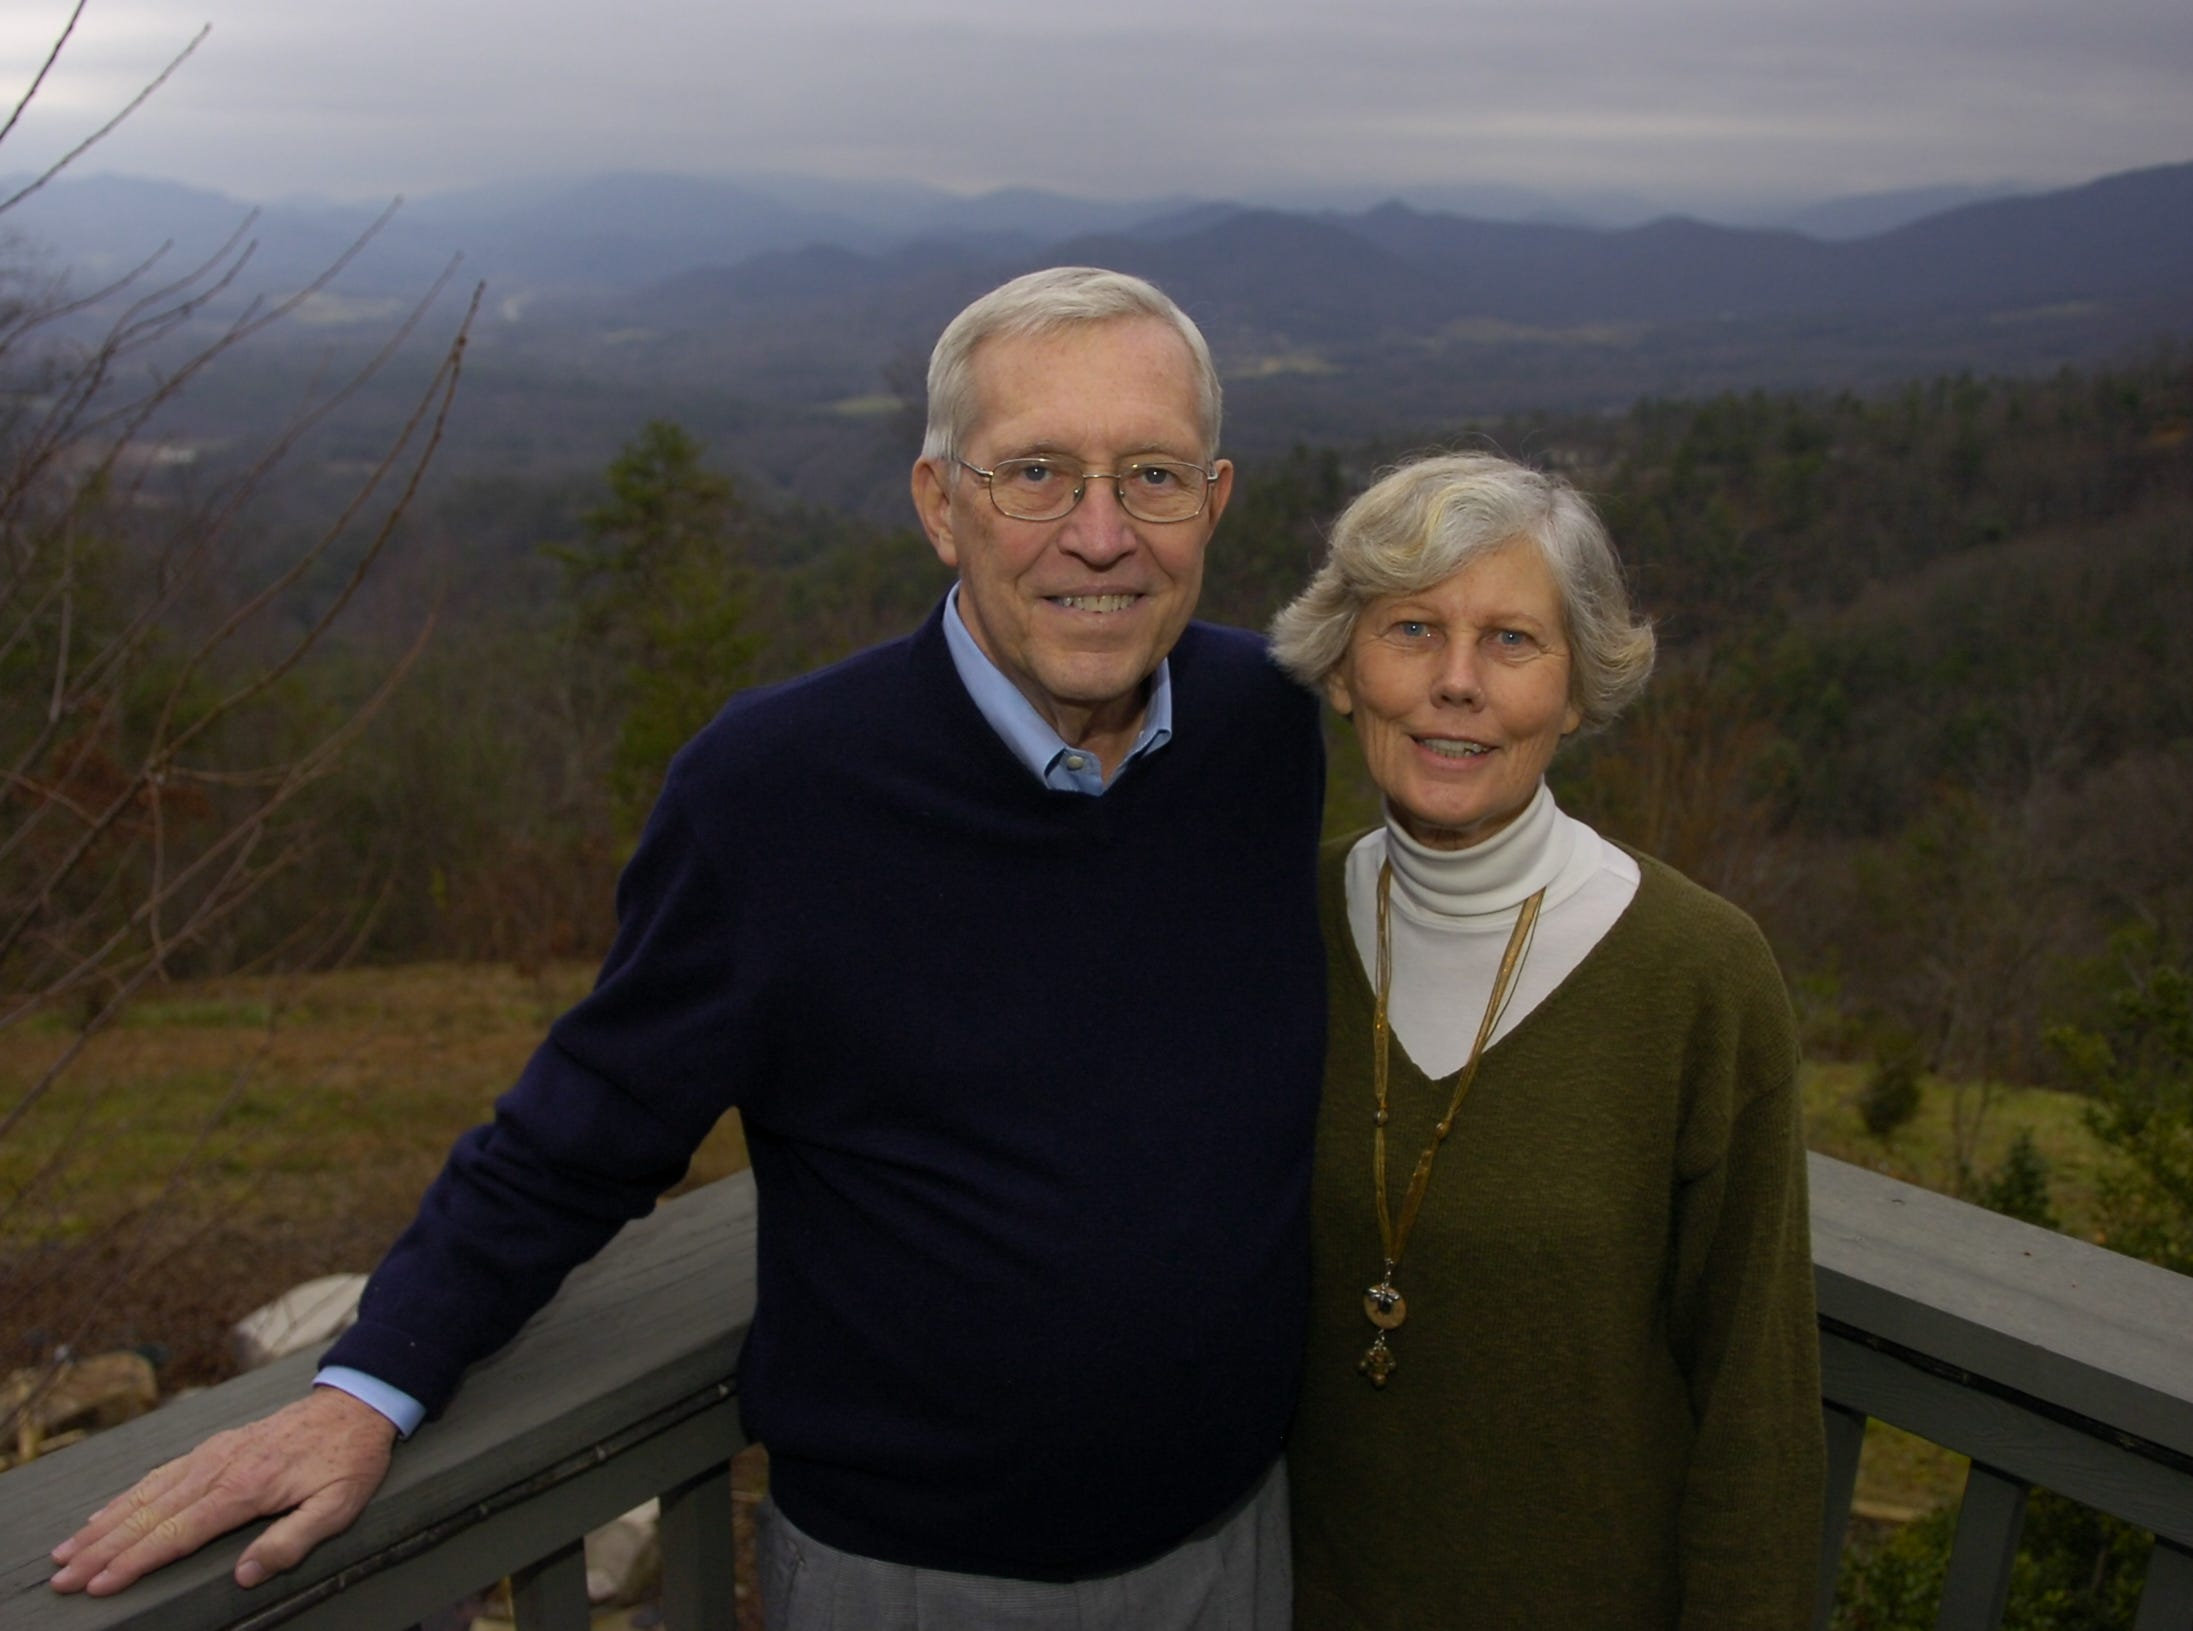 Former Tennessee Governor Don Sundquist and his wife Martha Sundquist pose for a portrait at their home in Laurel Valley, located in Townsend, TN. Sundquist served as governor from 1995 to 2002.